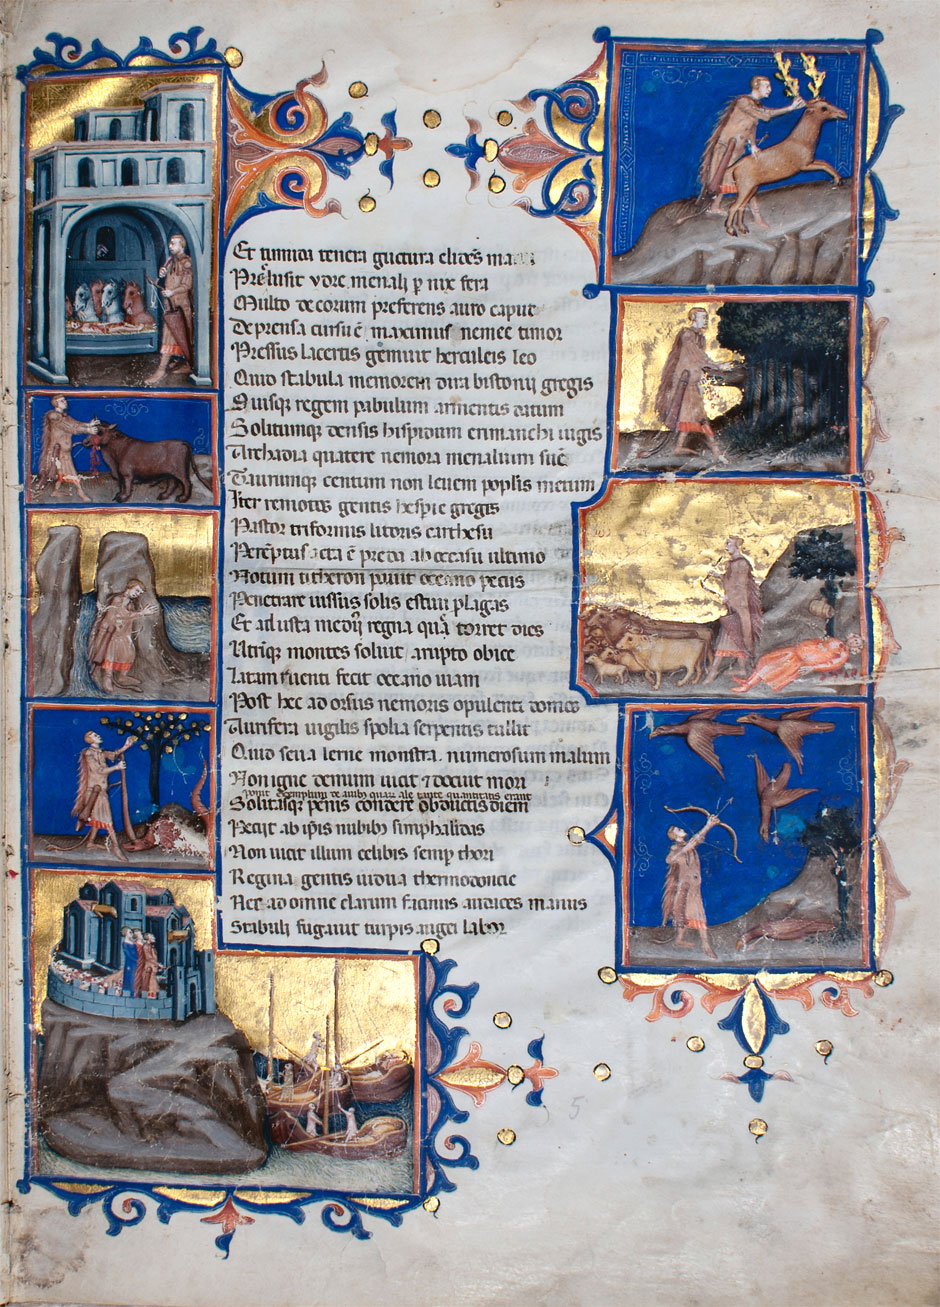 Paper Jewels - Medieval European Illuminated Manuscripts